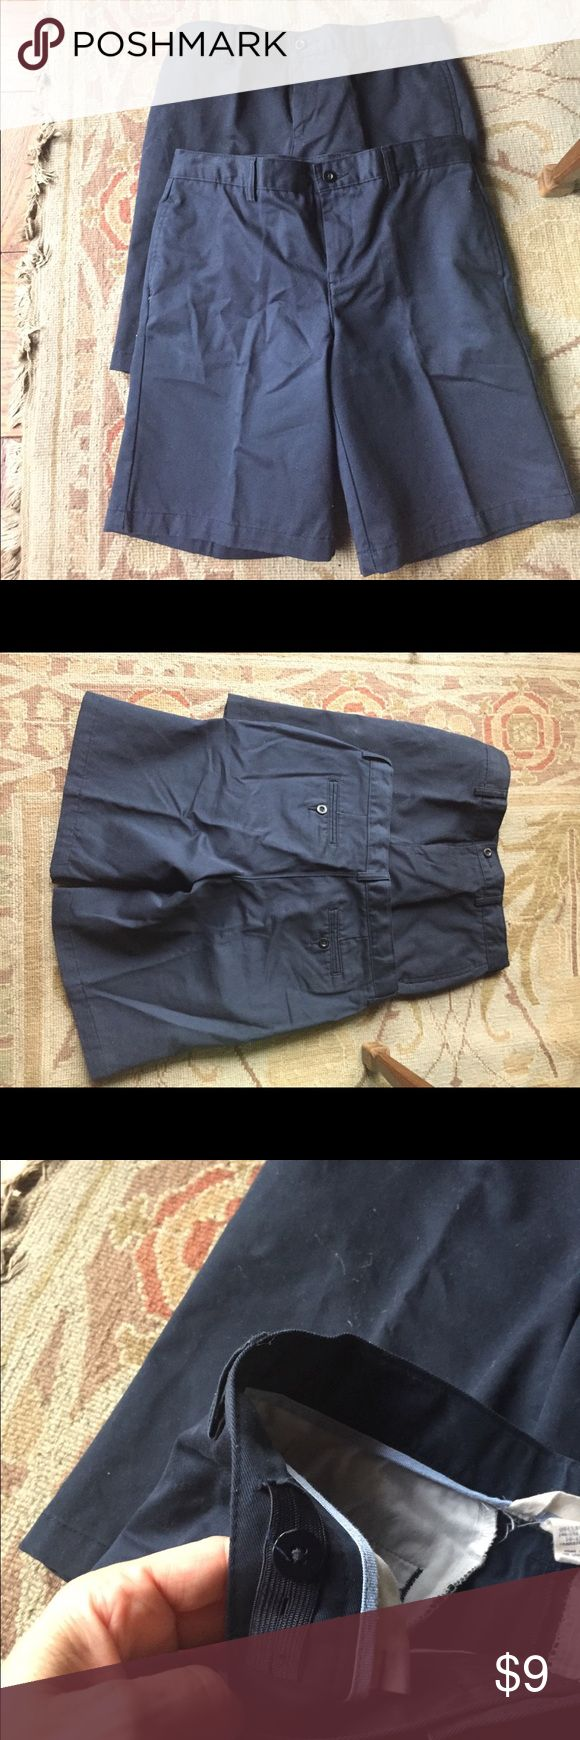 2 Pairs Lands End Uniform Shorts Husky Size New without tags.  Navy Blue.  10-12 Husky. Lands' End Bottoms Shorts